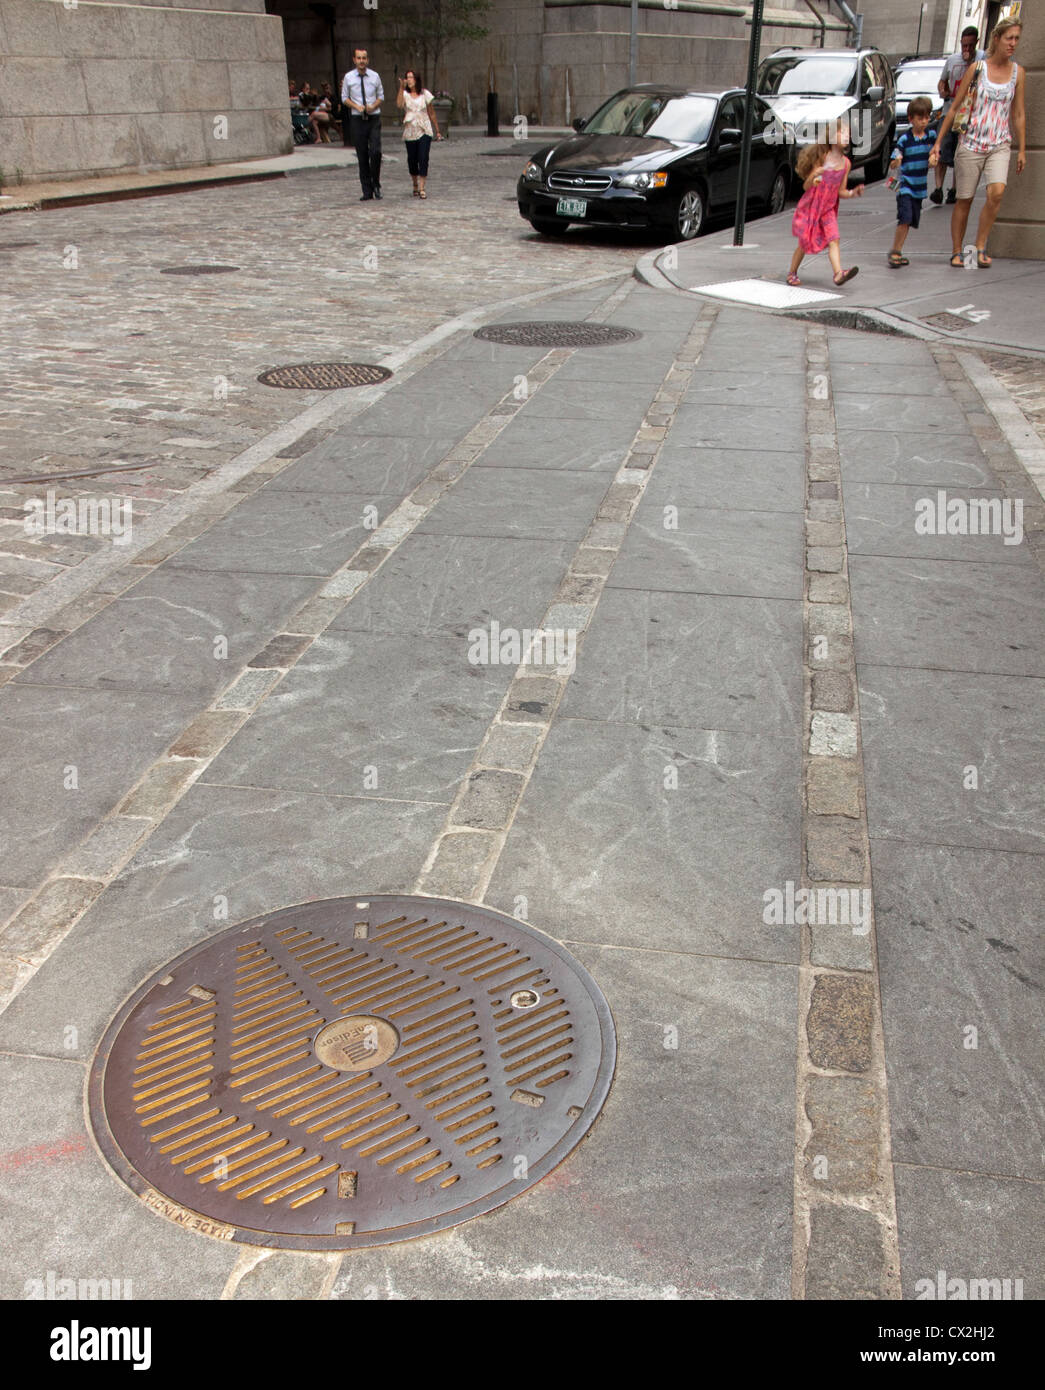 People walking the streets of DUMBO, Brooklyn, New York, nearby a manhole cover. - Stock Image